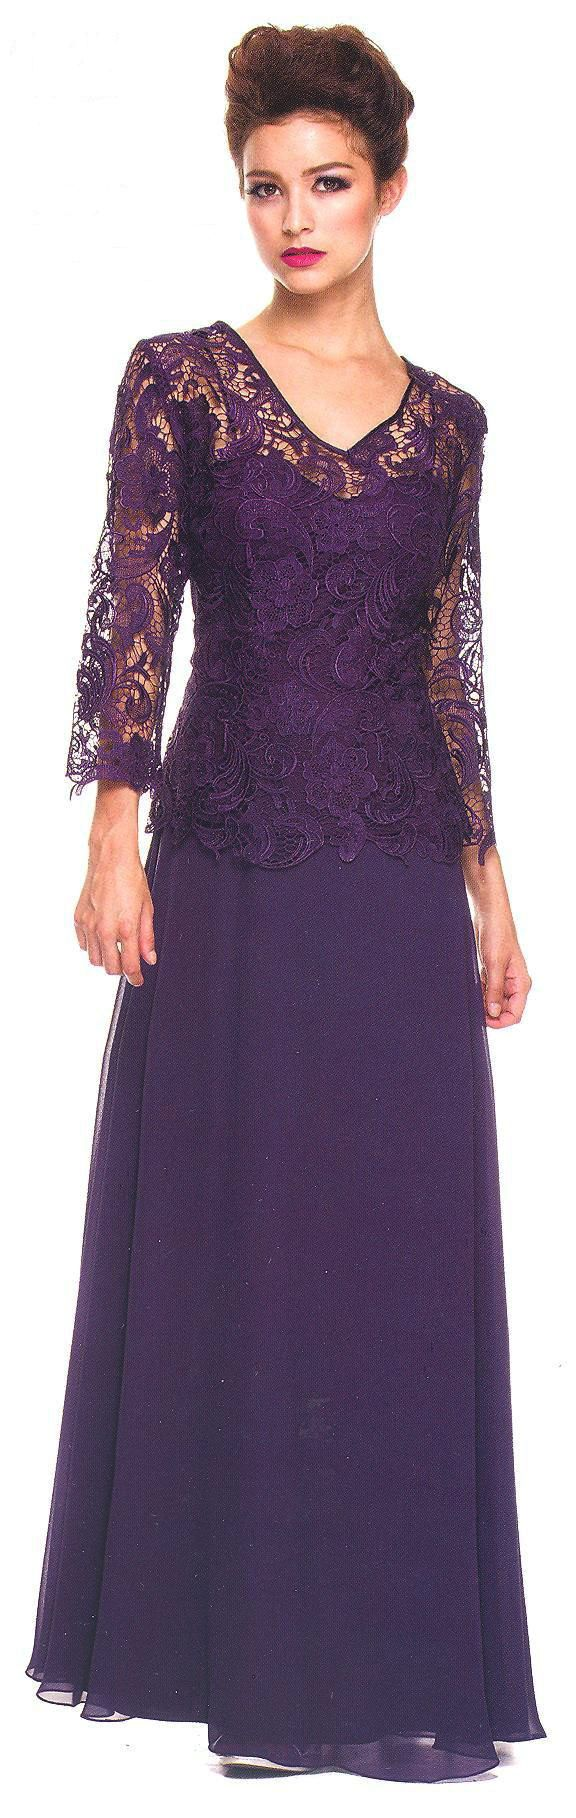 Mother of the Bride Evening Dresses<BR>ana5116<BR>Sheer floral lace scoop neckline over sweetheart bodice with 3/4 sleeves to ribbon waist.